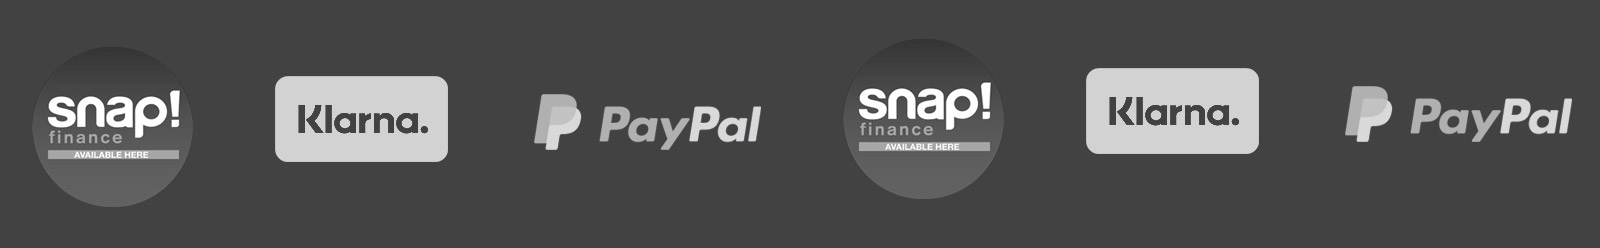 GetGeared offers Snap Finance, Klarna and PayPal